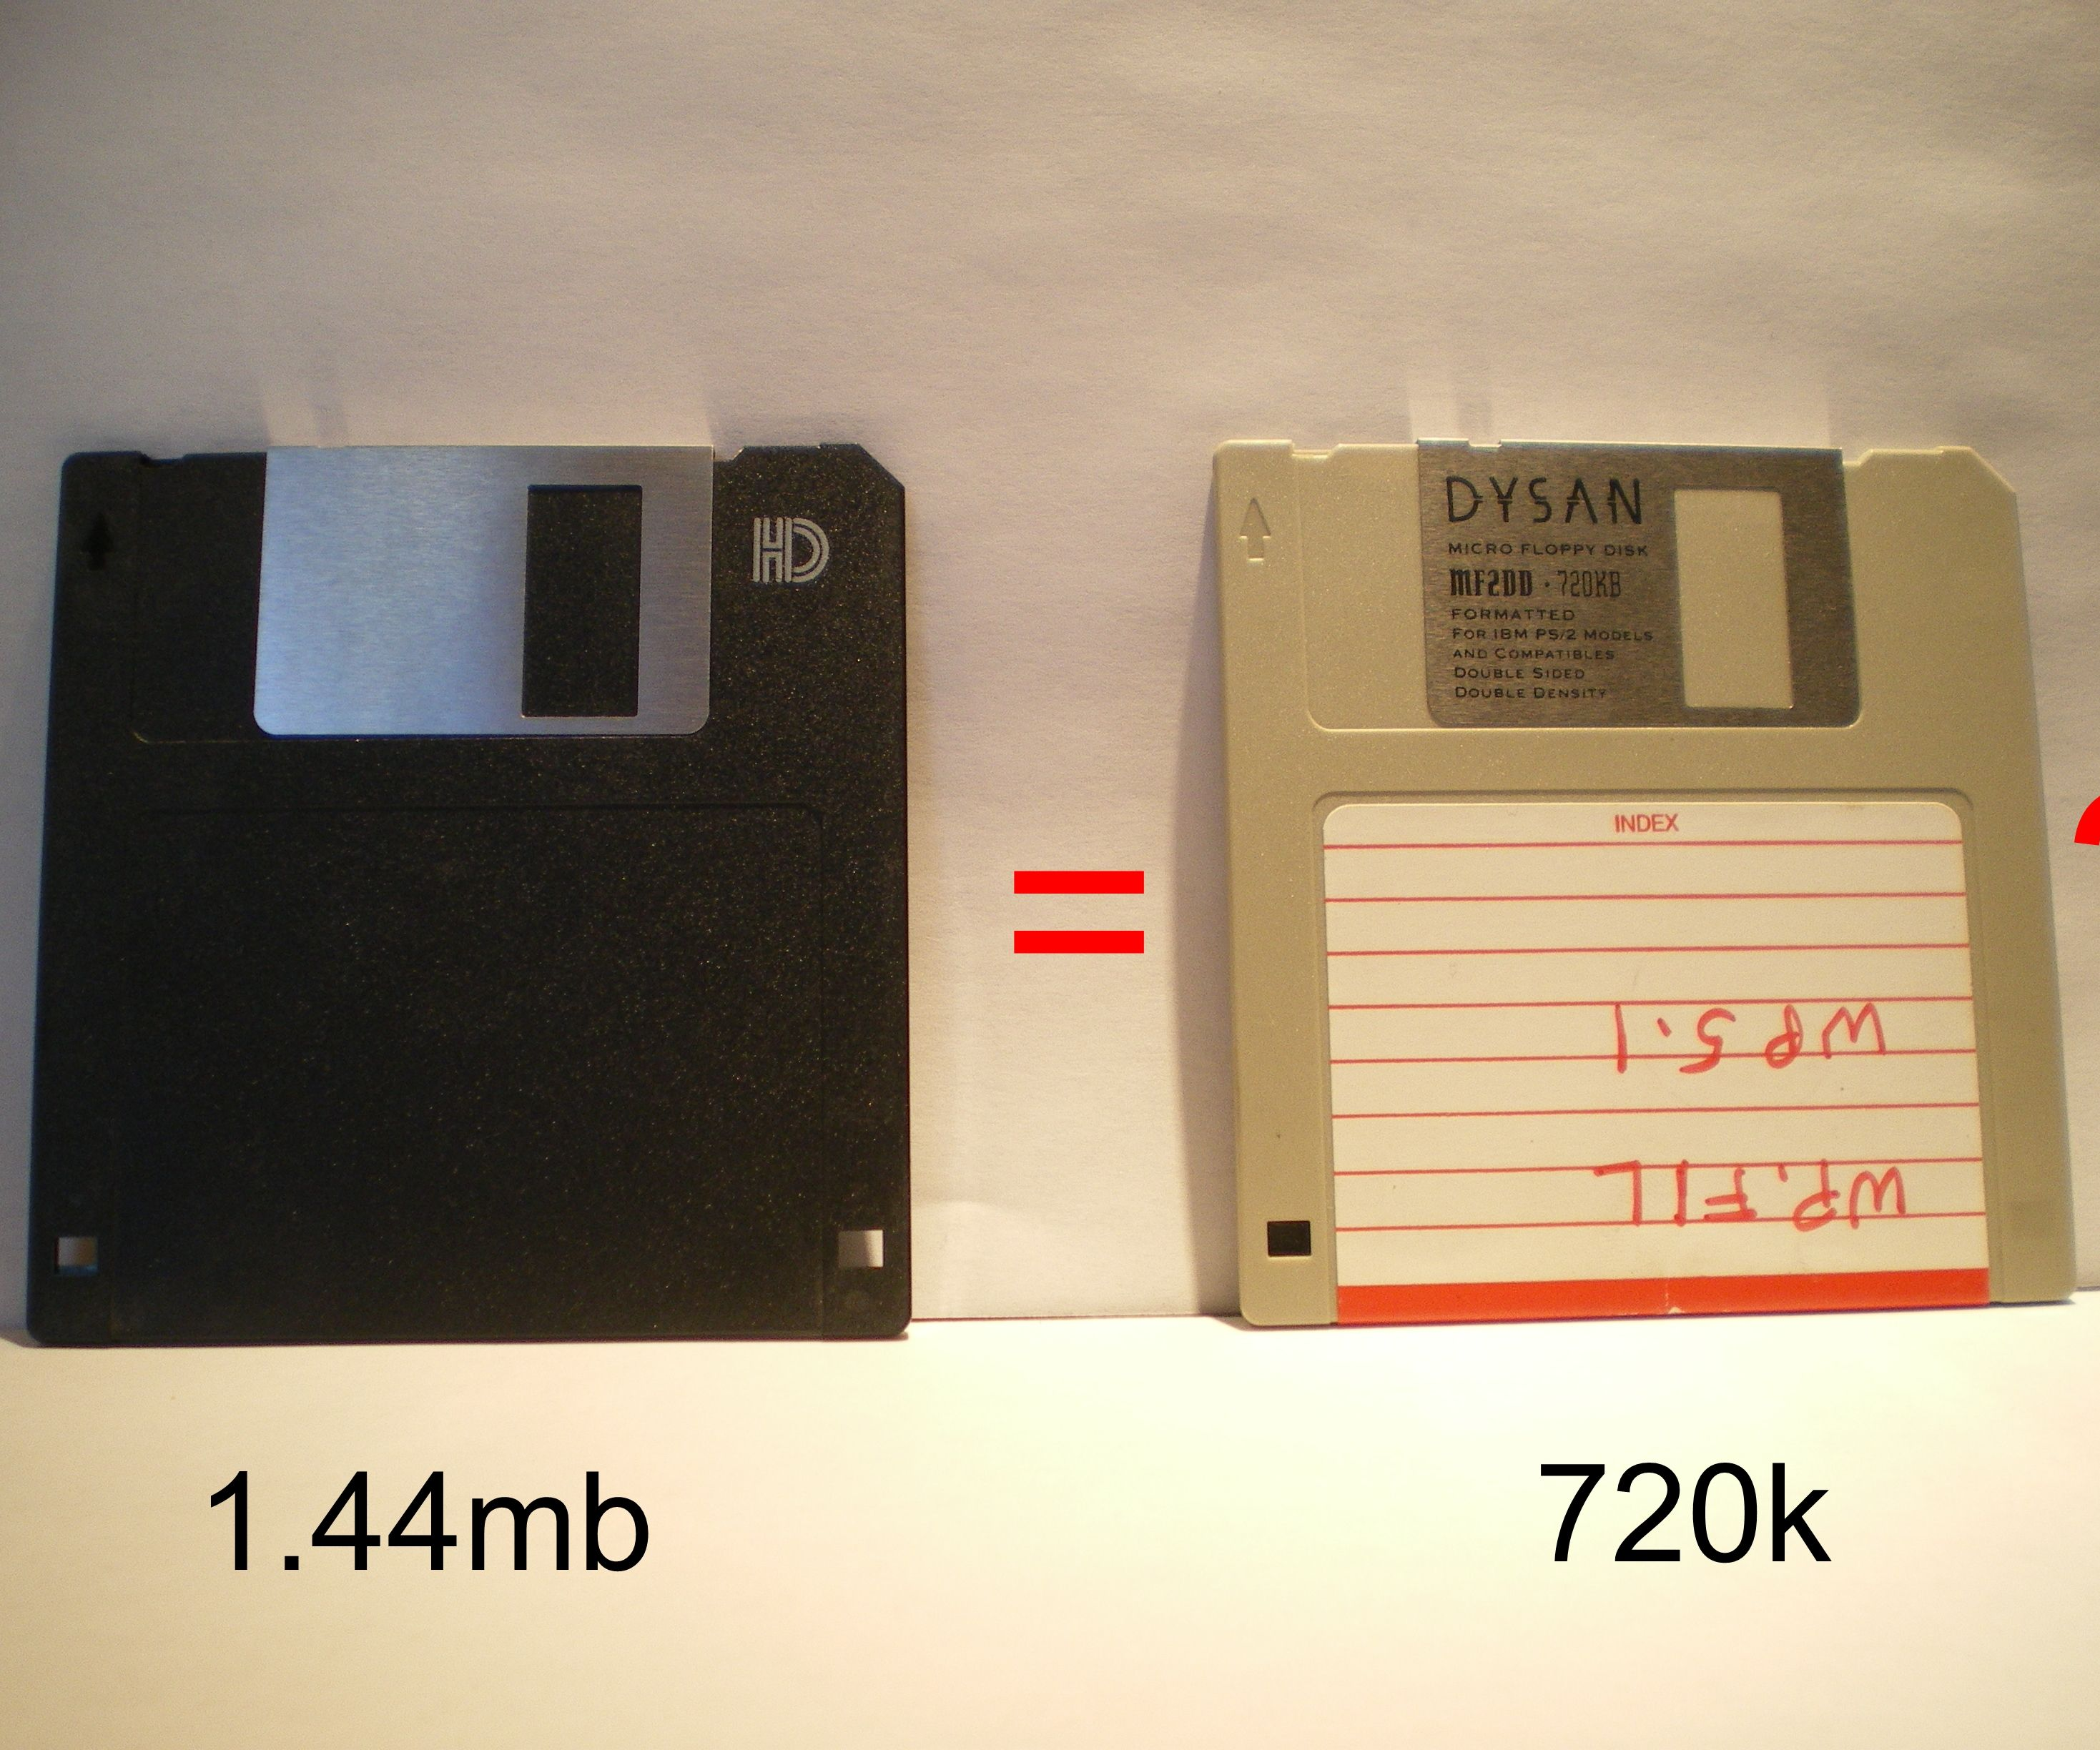 Convert a 1 44MB Floppy to 720K: 4 Steps